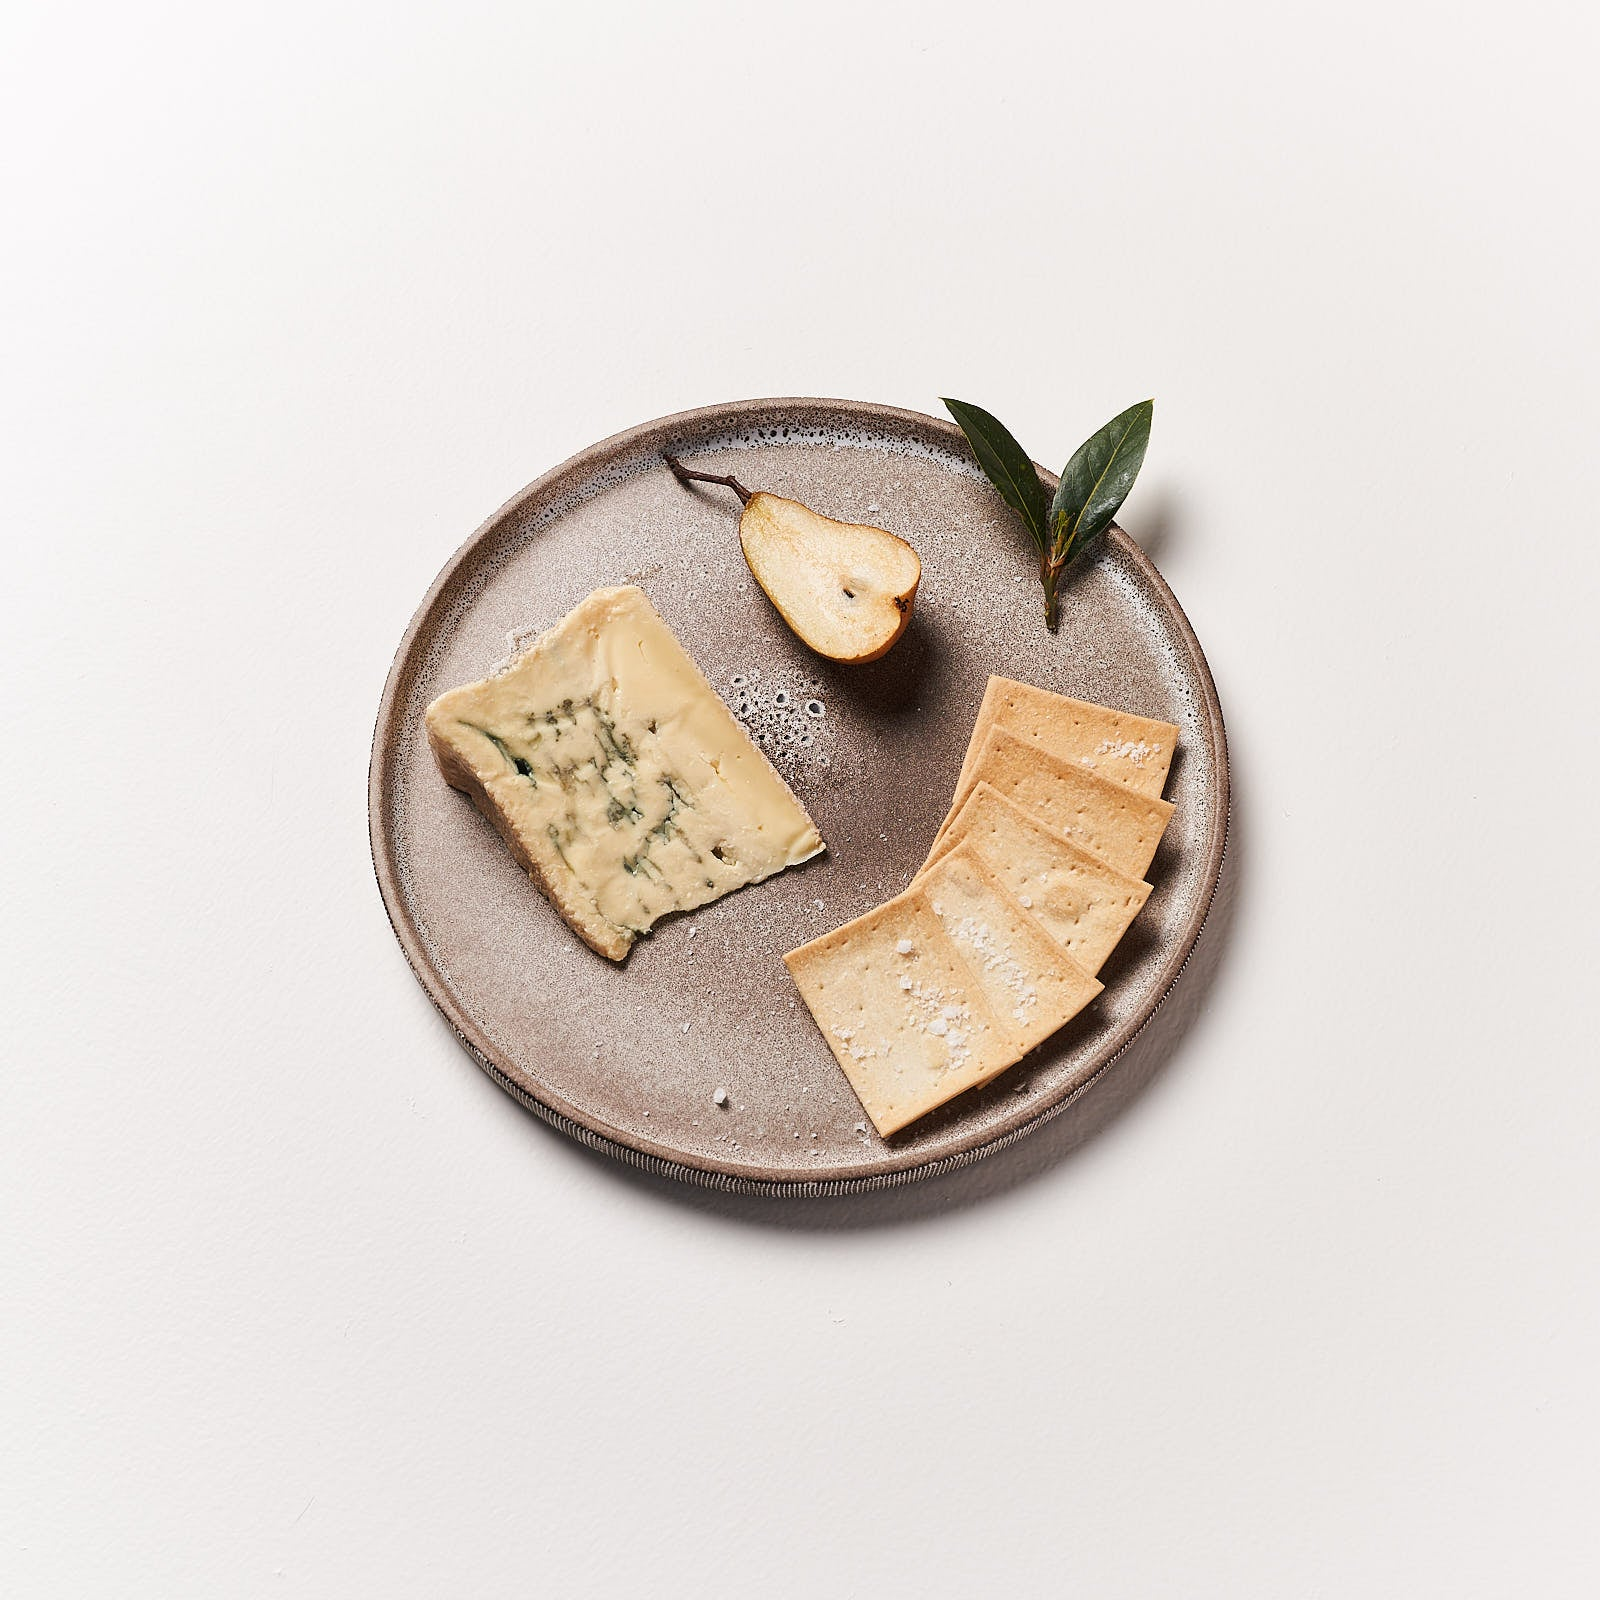 Berry's Creek Mossvale Blue Cheese